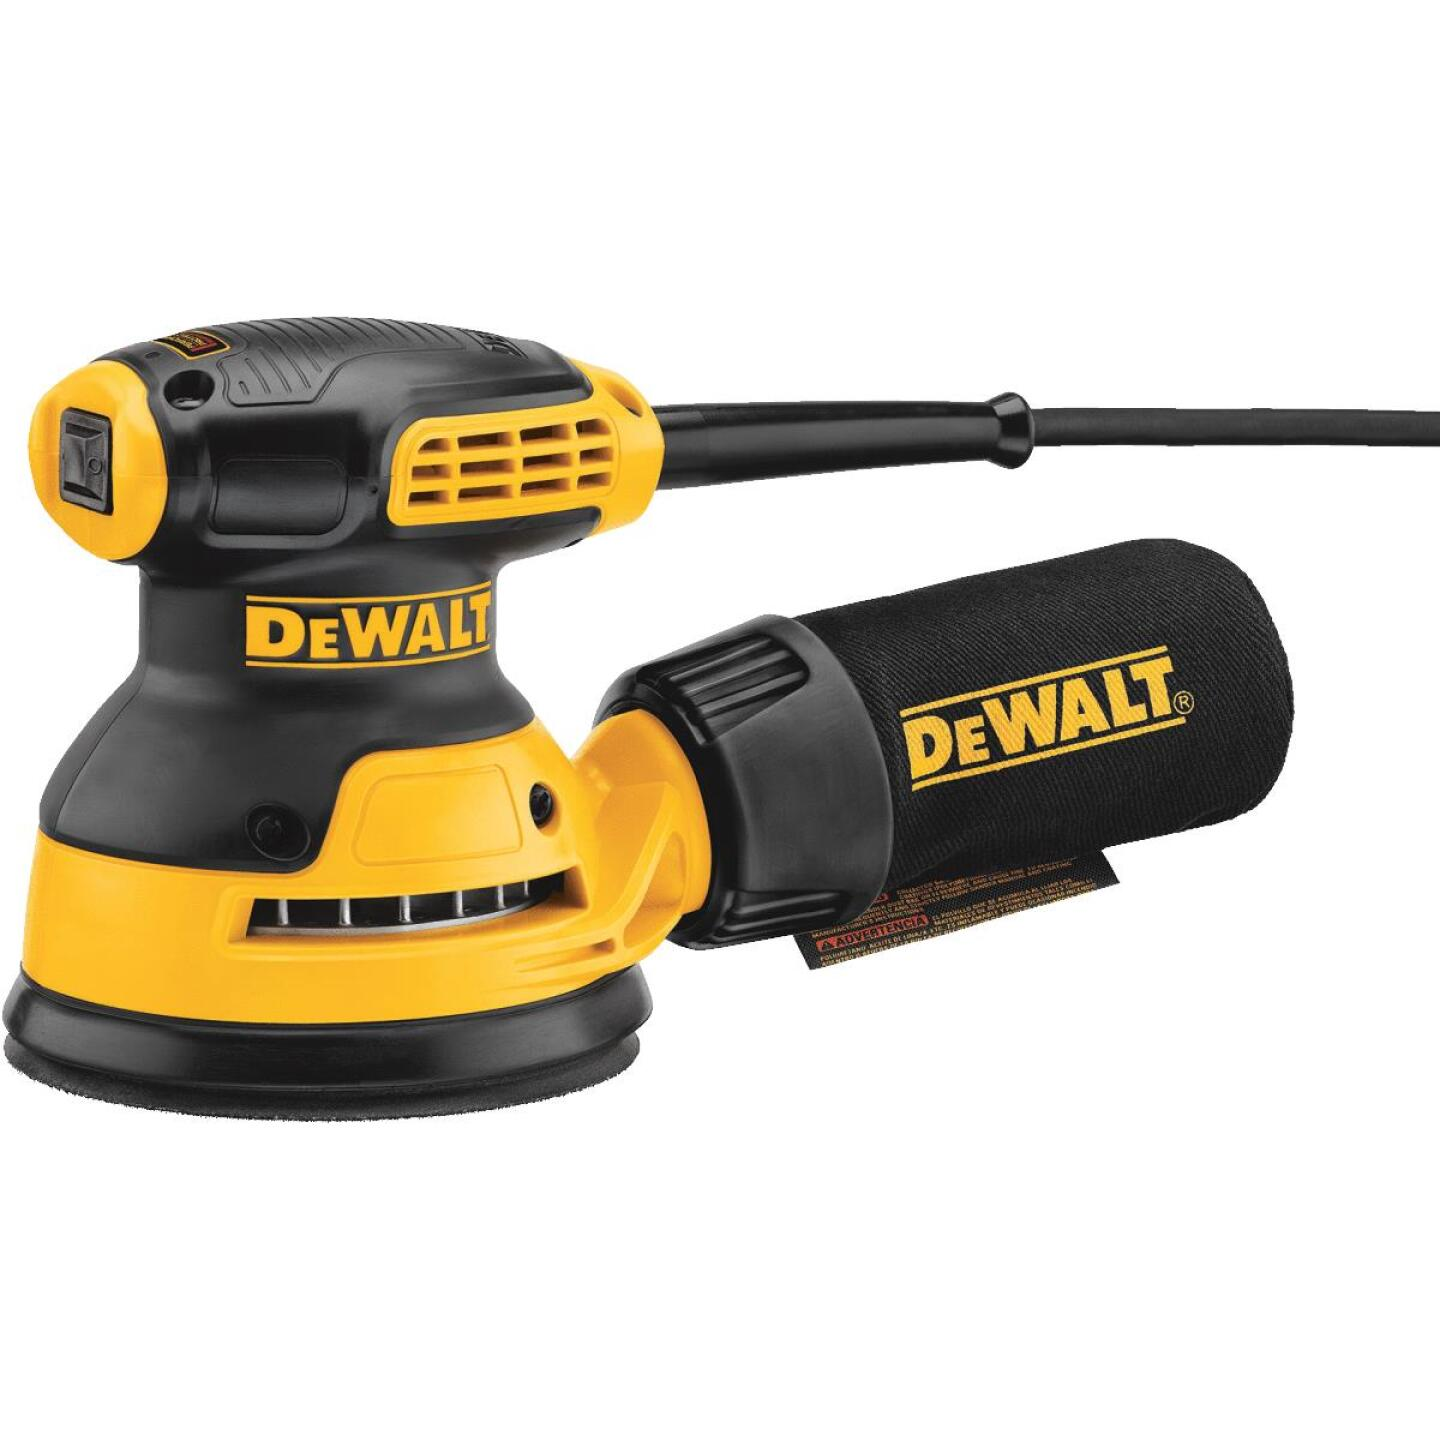 DeWalt 5 In. 3.0A Random Orbit Finish Sander Image 1